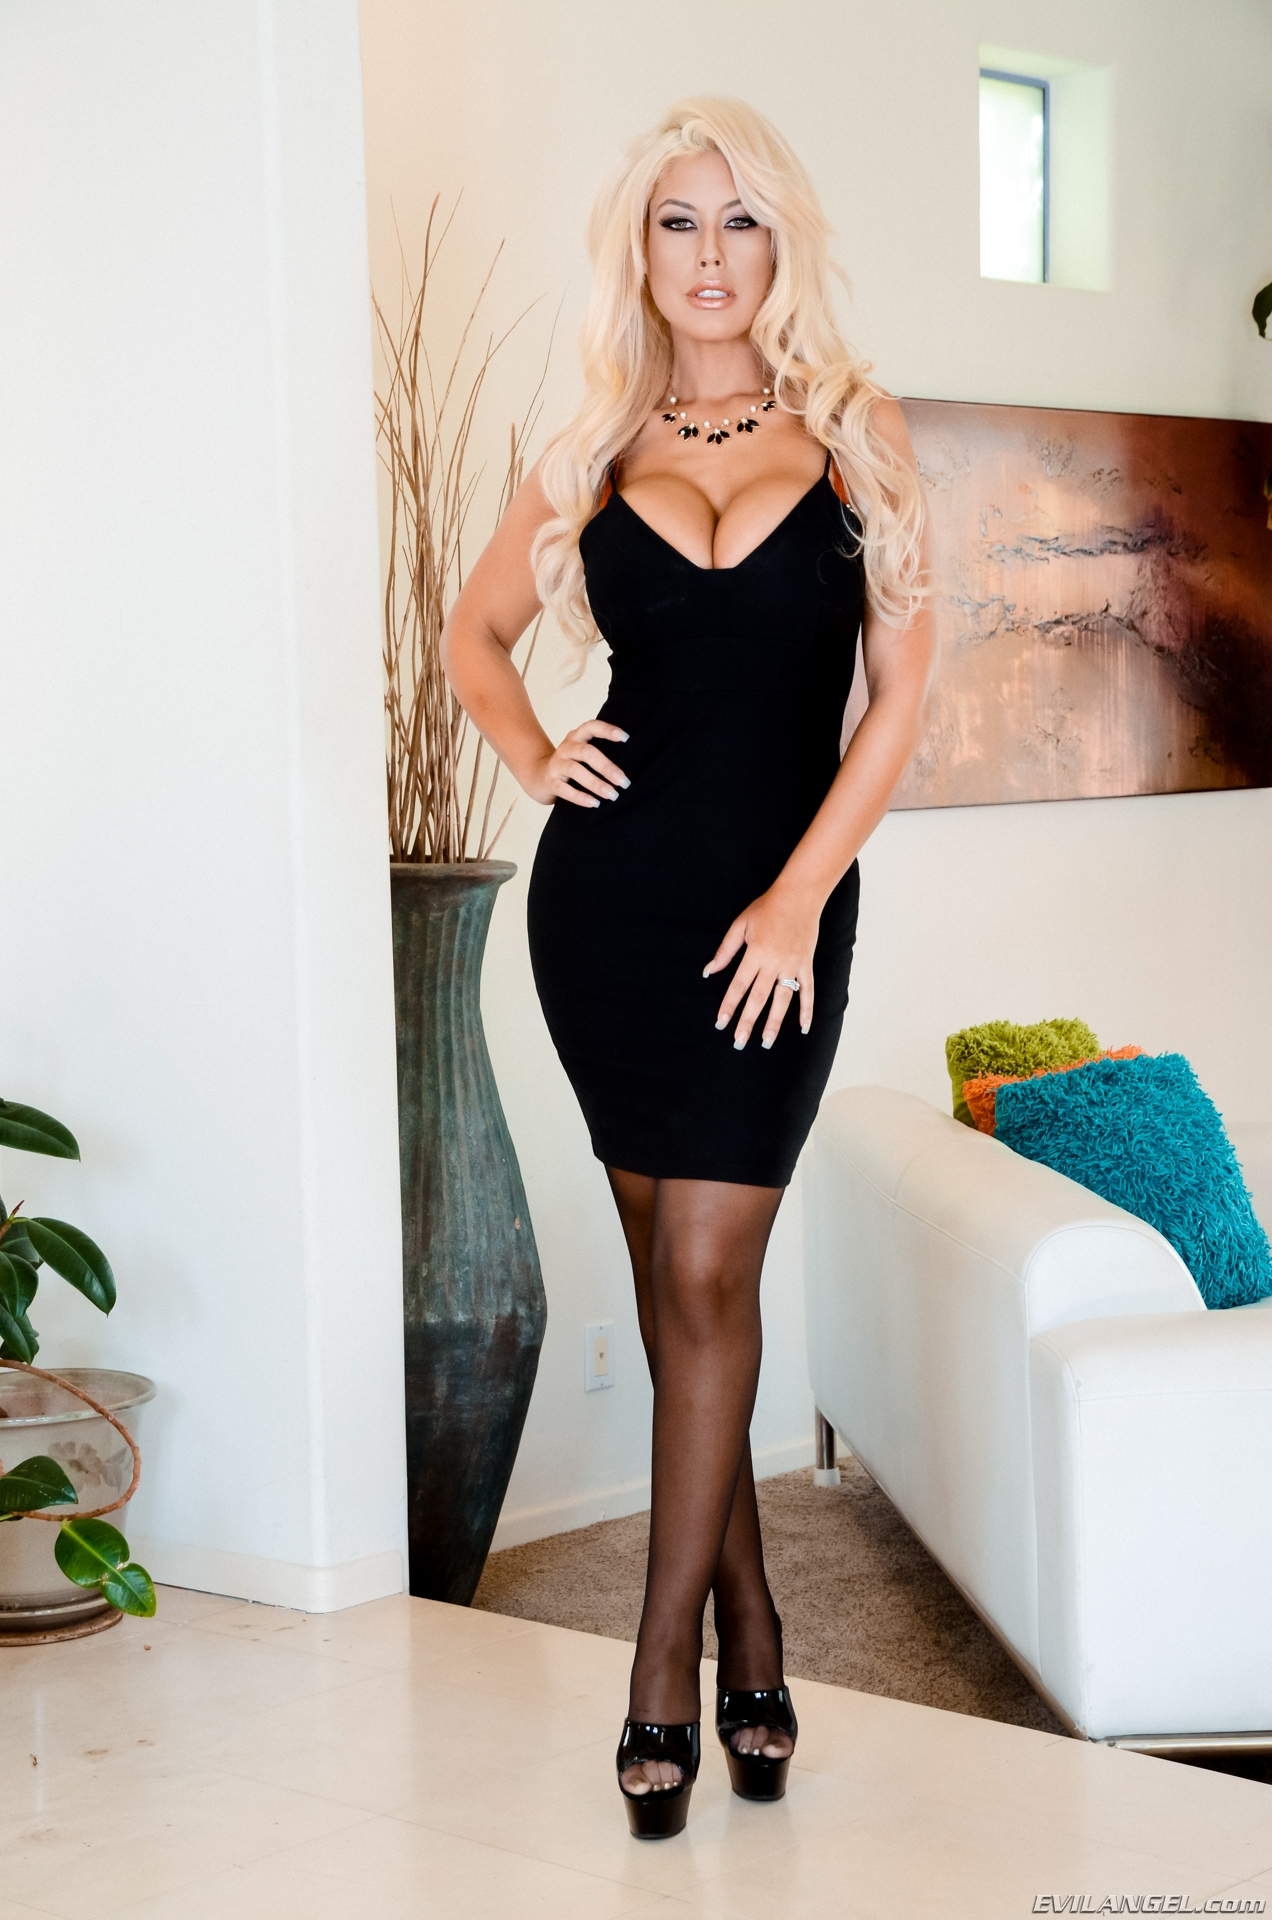 milf bridgette b. looks stunning in a super tight skirt with